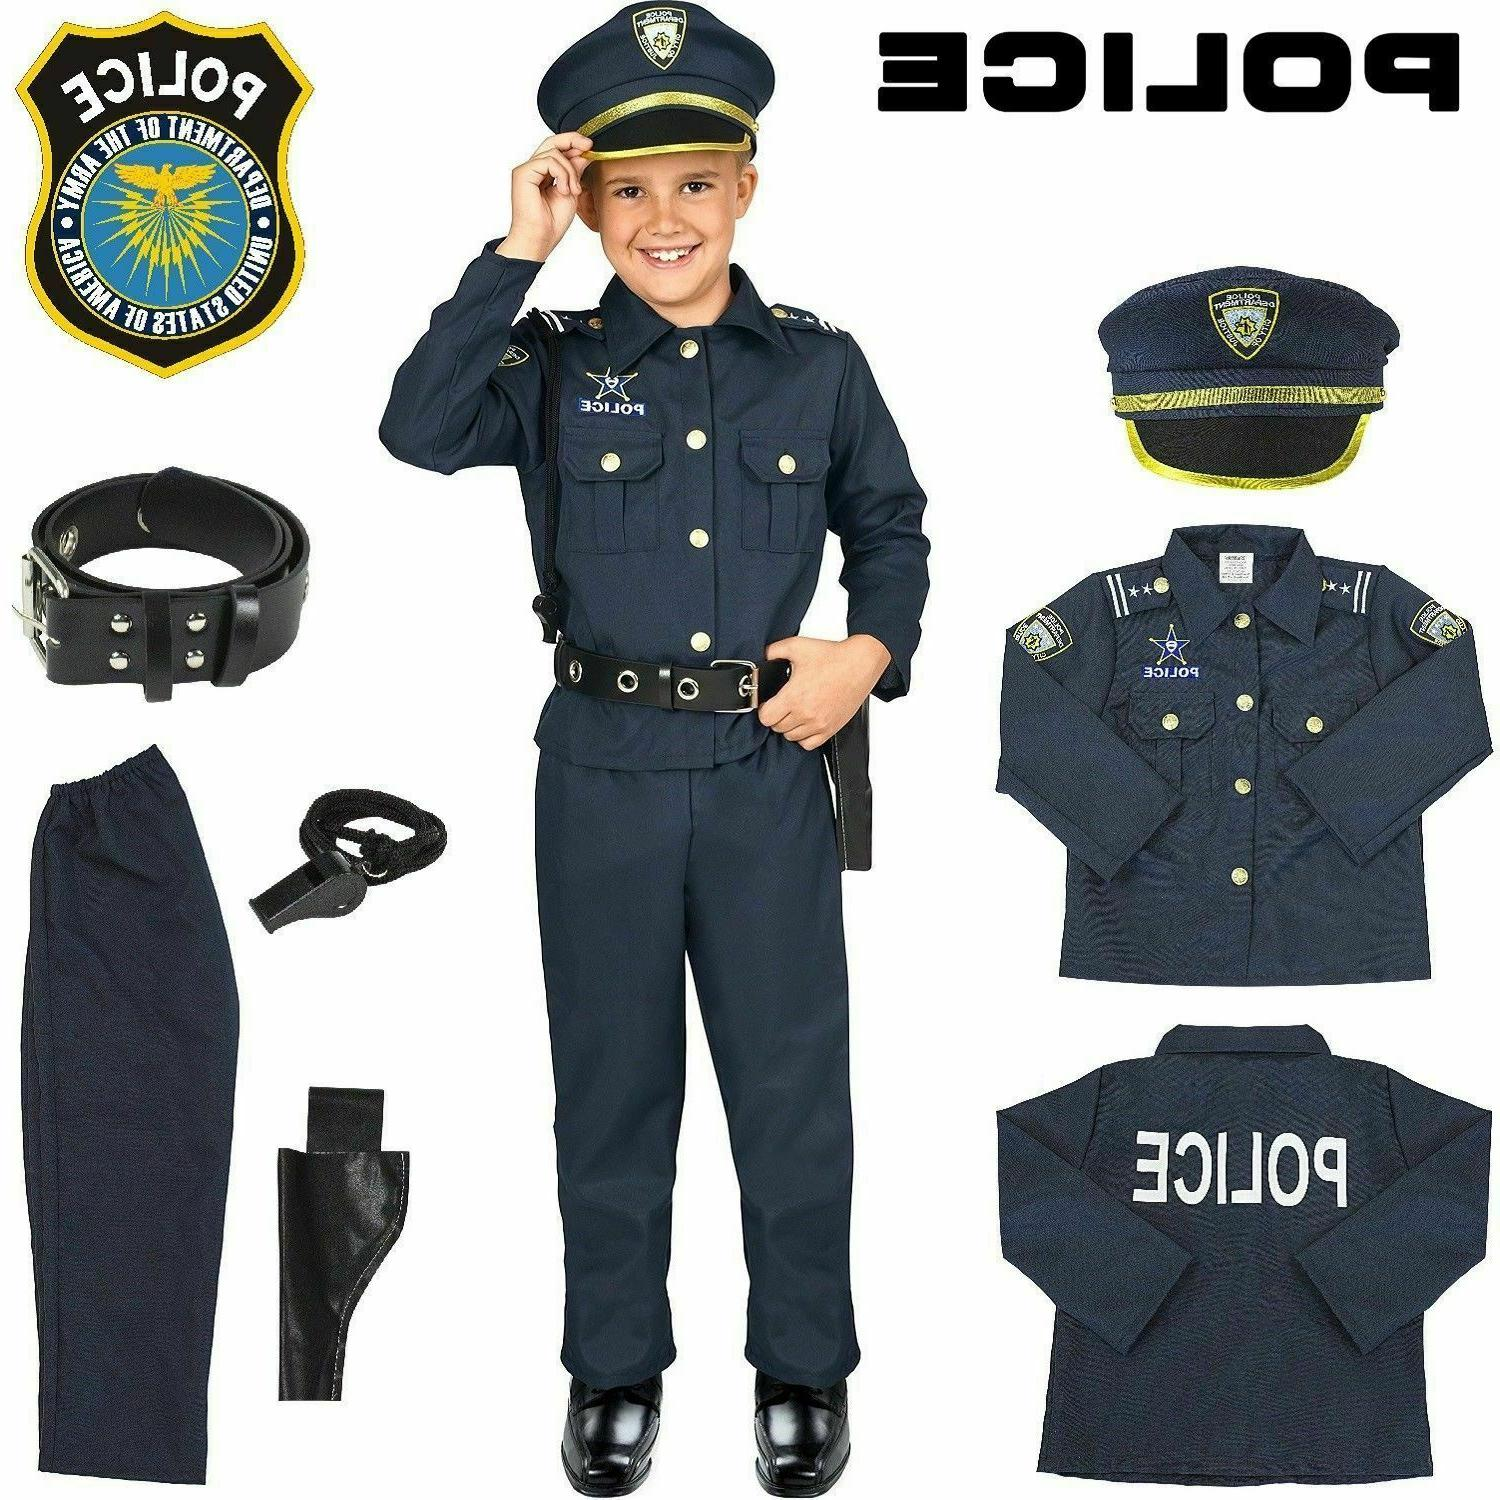 police officer kids costume halloween uniform outfit